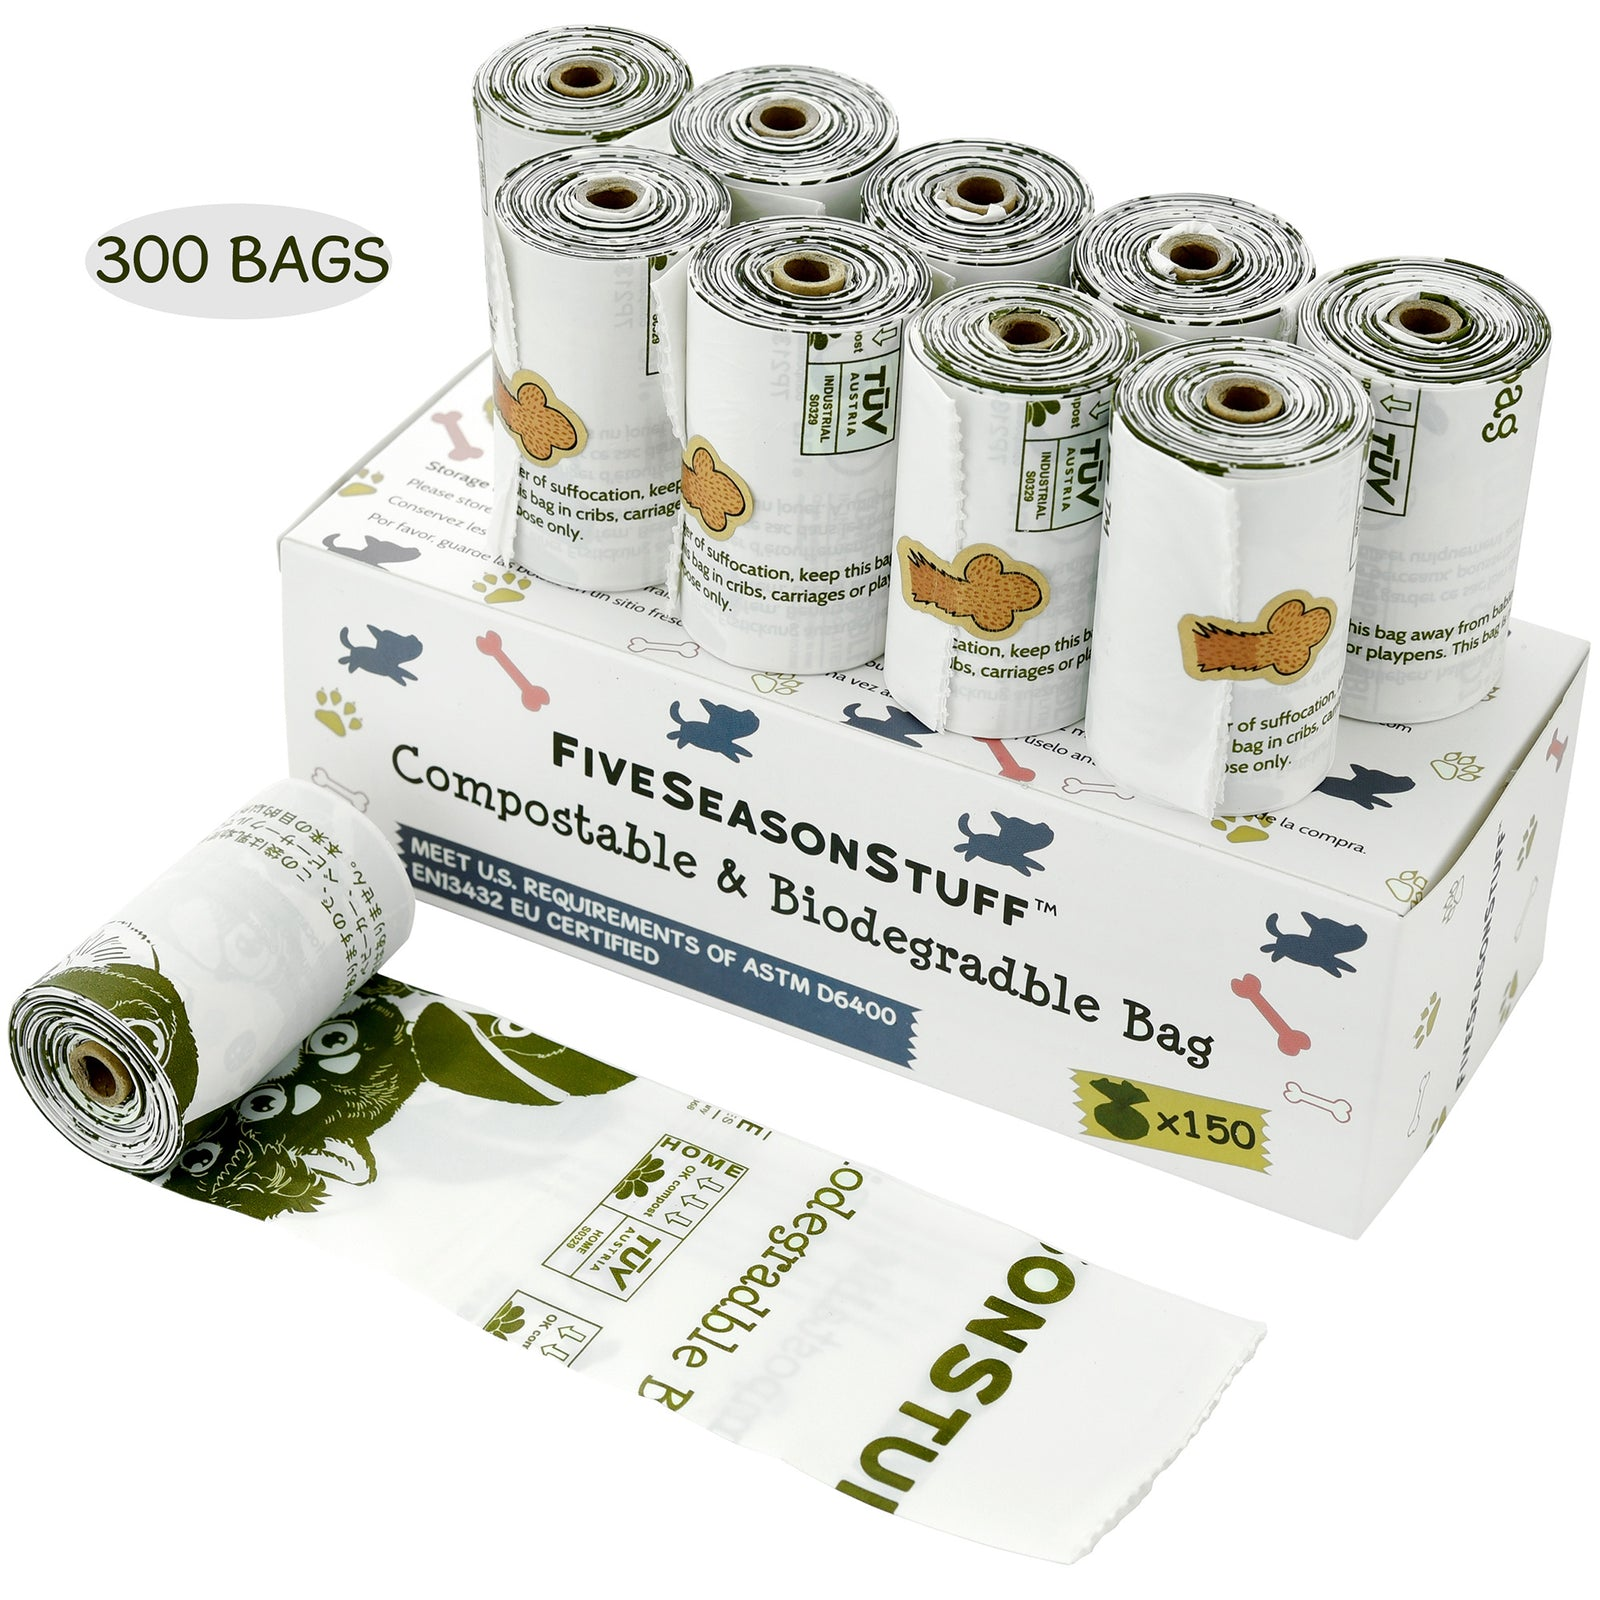 300 Dog Poop Bags (White – Unscented) 100% Biodegradable & Compostable in 3-5 Months